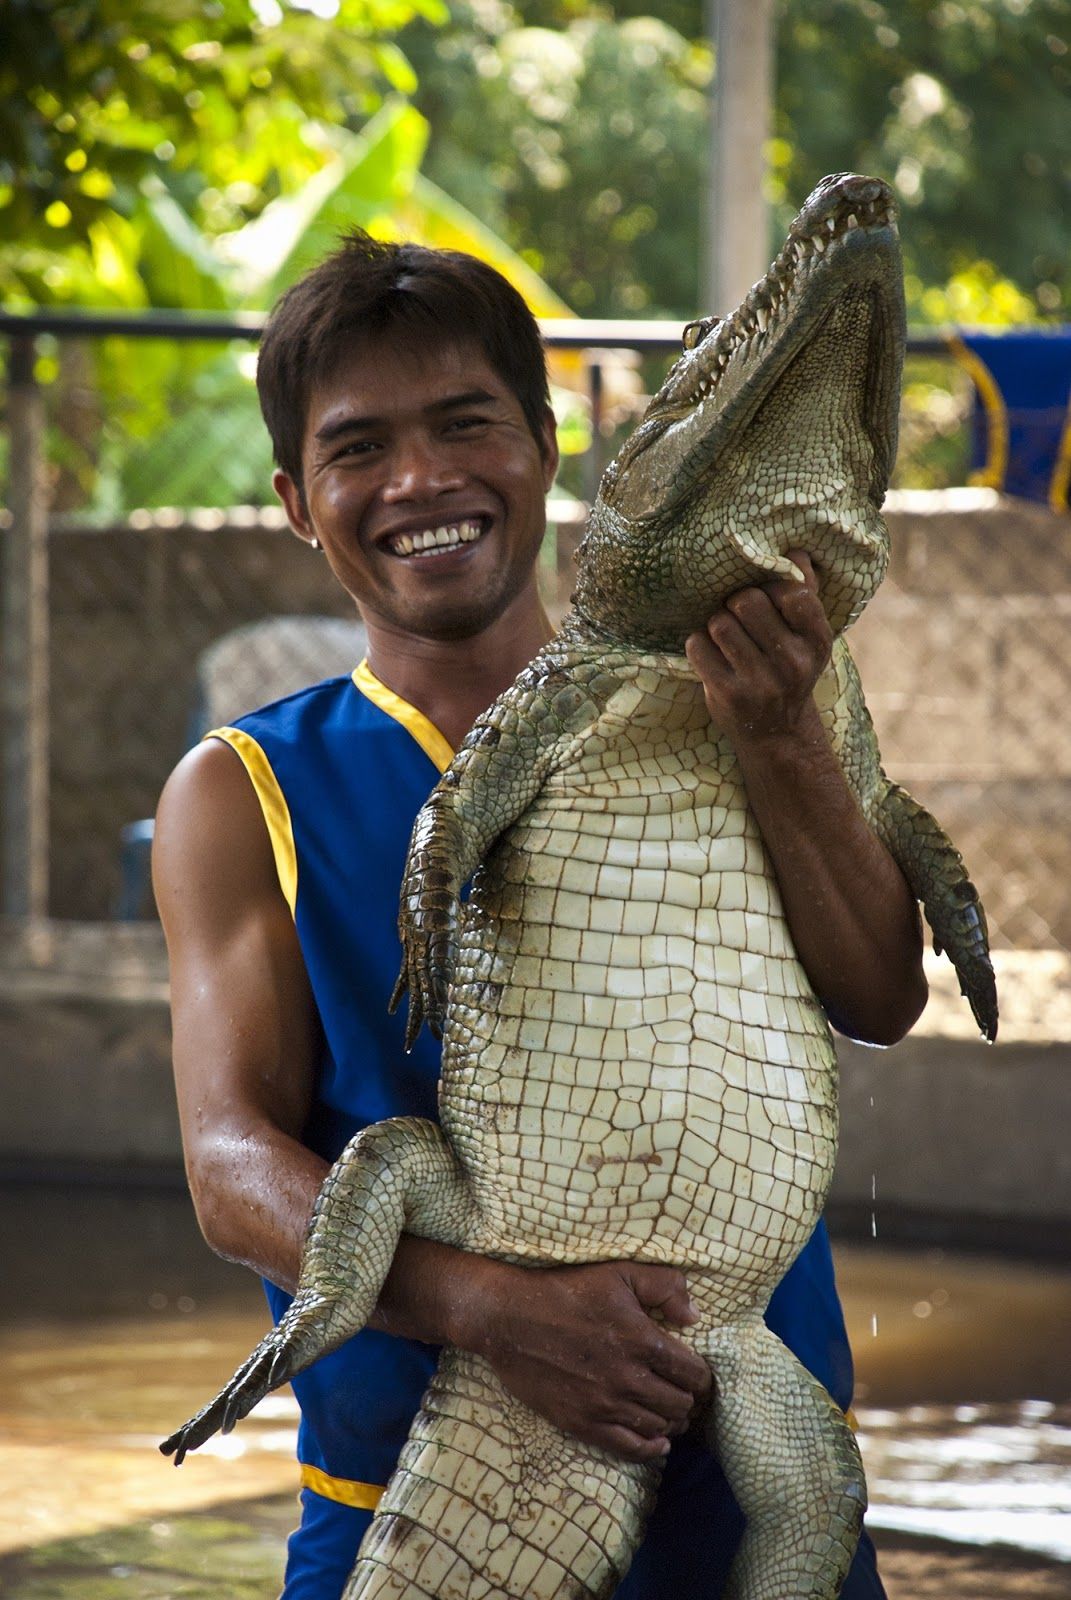 A man touching a crocodile skin.